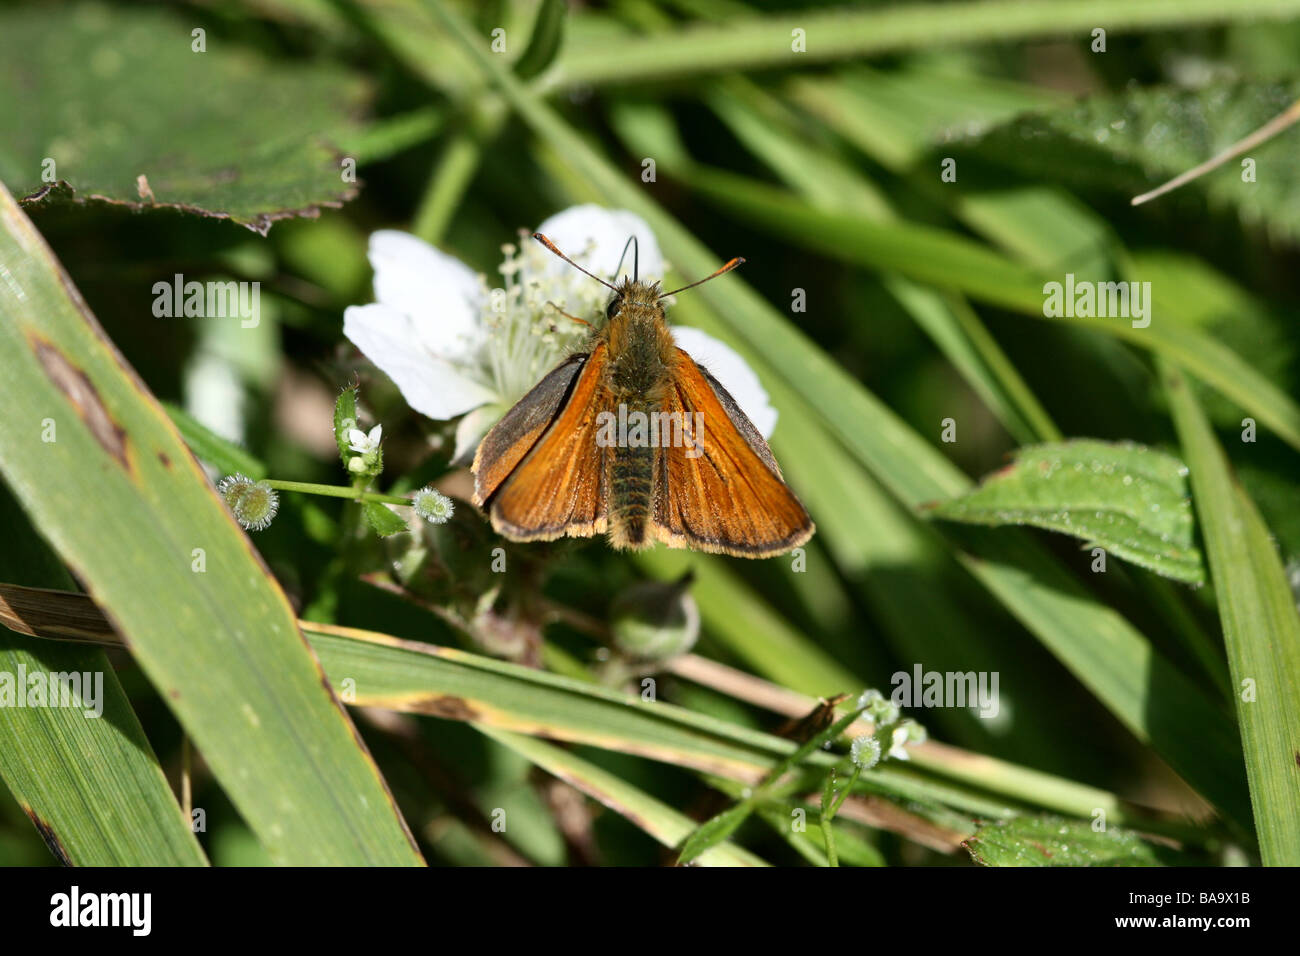 Small Skipper Thymelicus sylvestris on Bramble showing detail of forewings - Stock Image